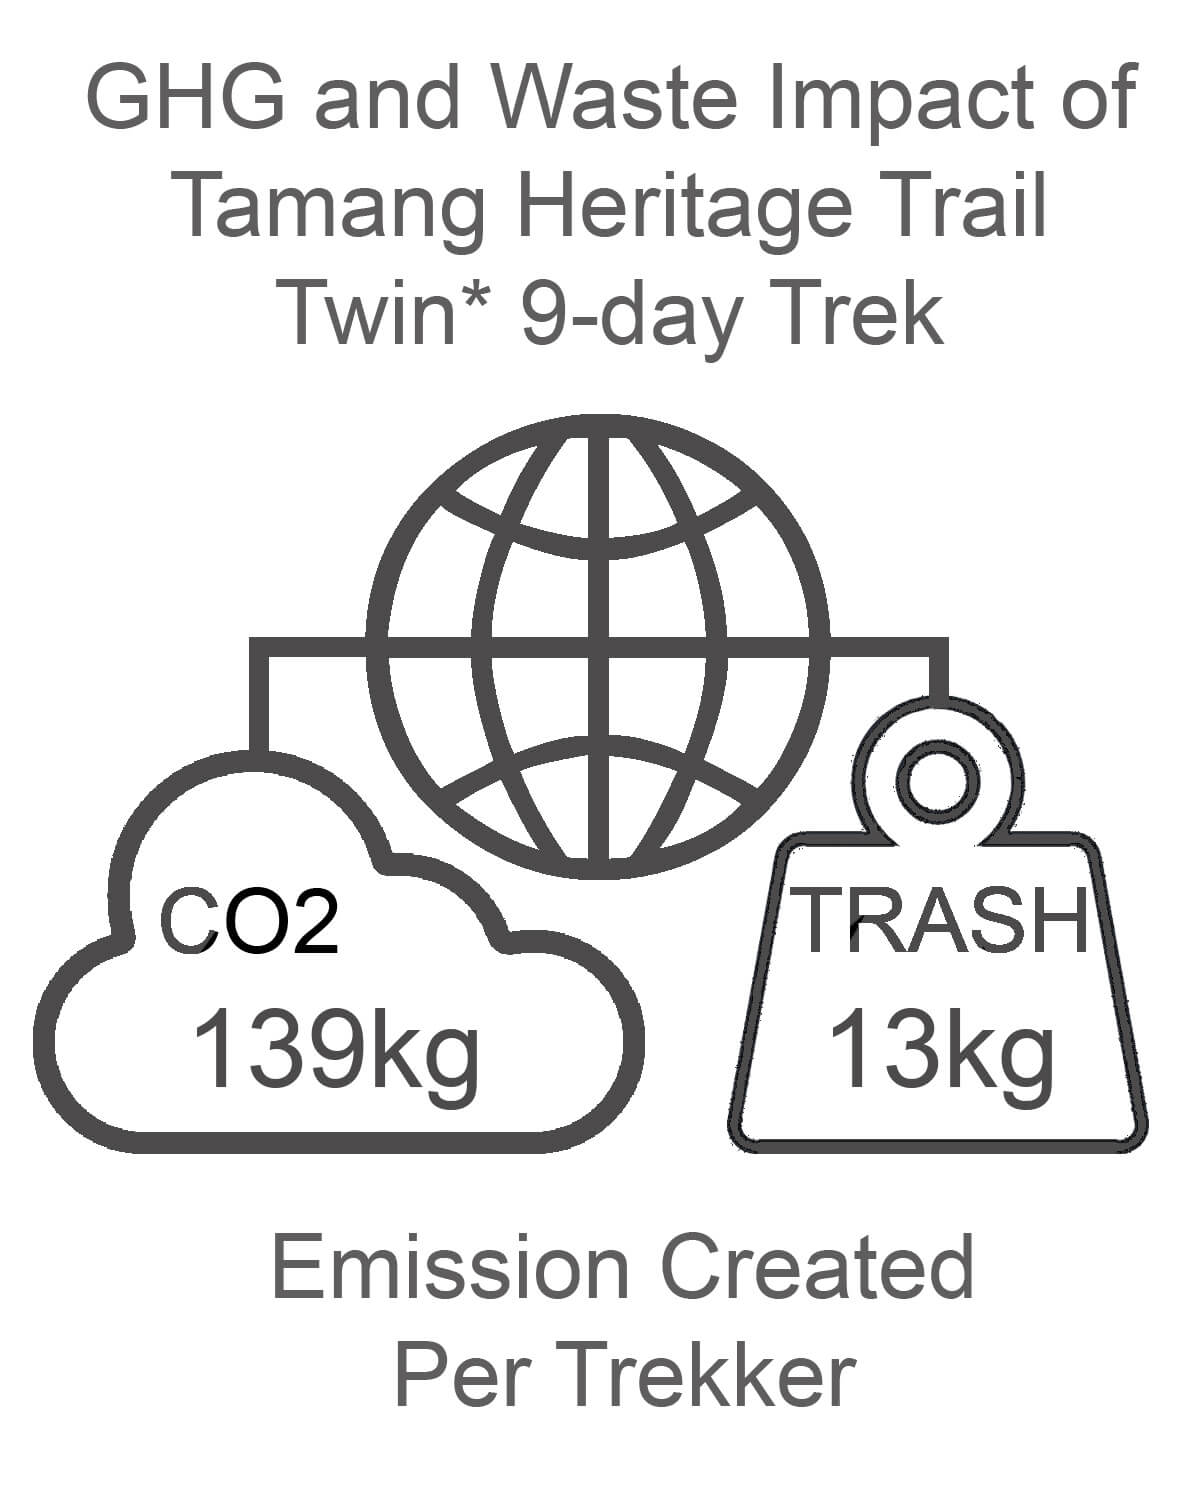 Tamang Heritage Trail GHG and Waste Impact TWIN